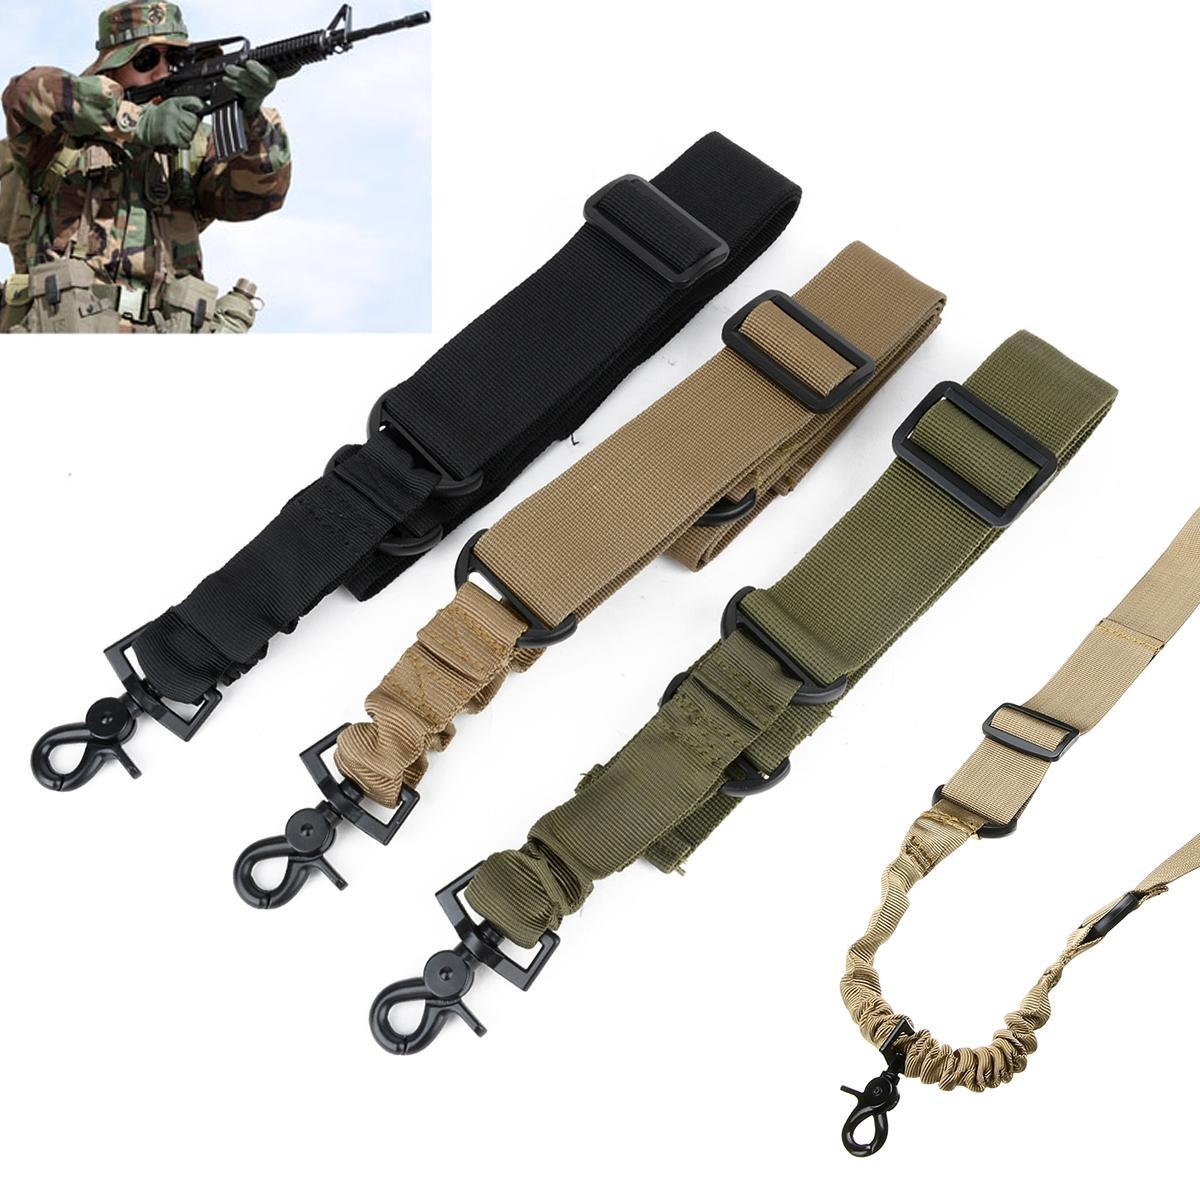 Adjustable Tactical Sling Strap Heavy Duty One Single Point Belt With D-ring